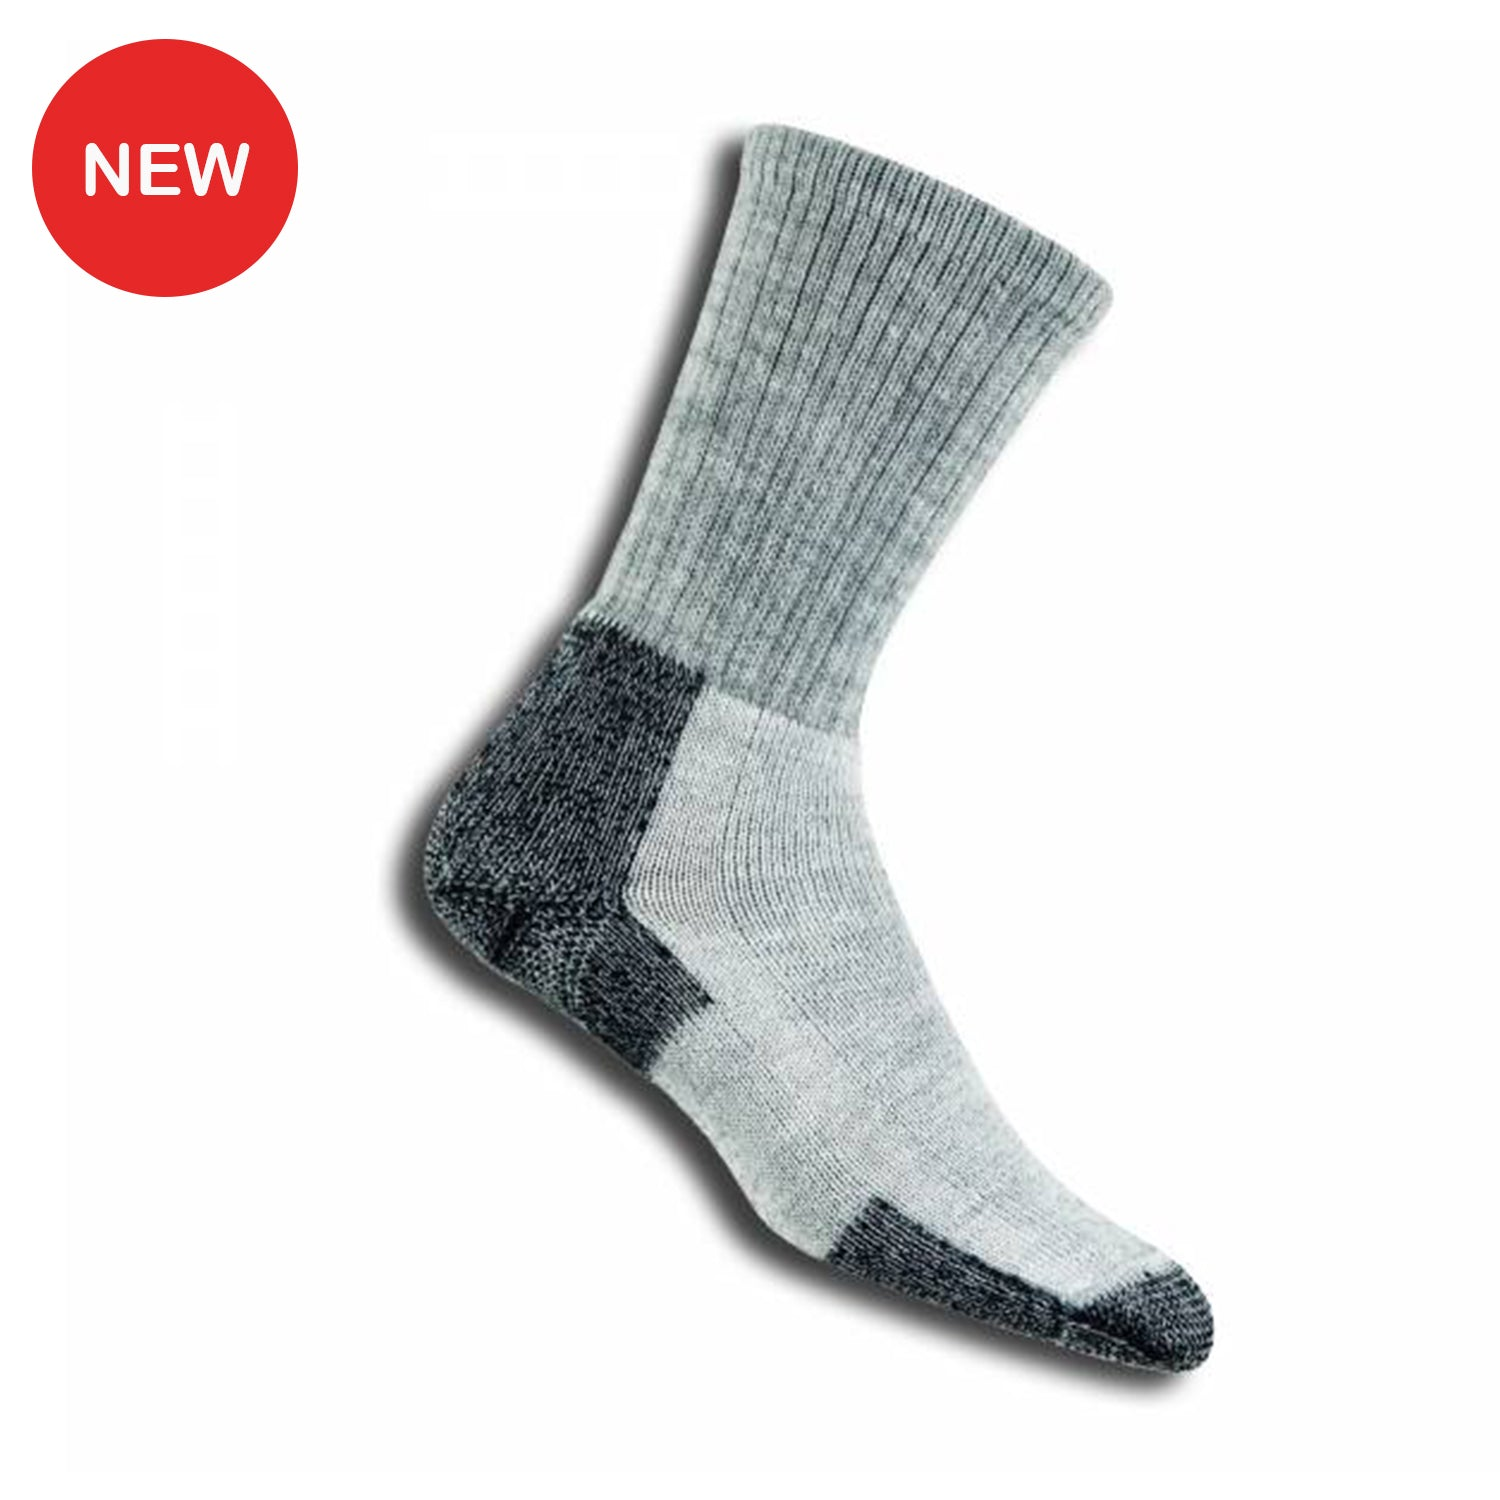 Thorlo Wool Hiking Socks (KLT) - Grey/Black